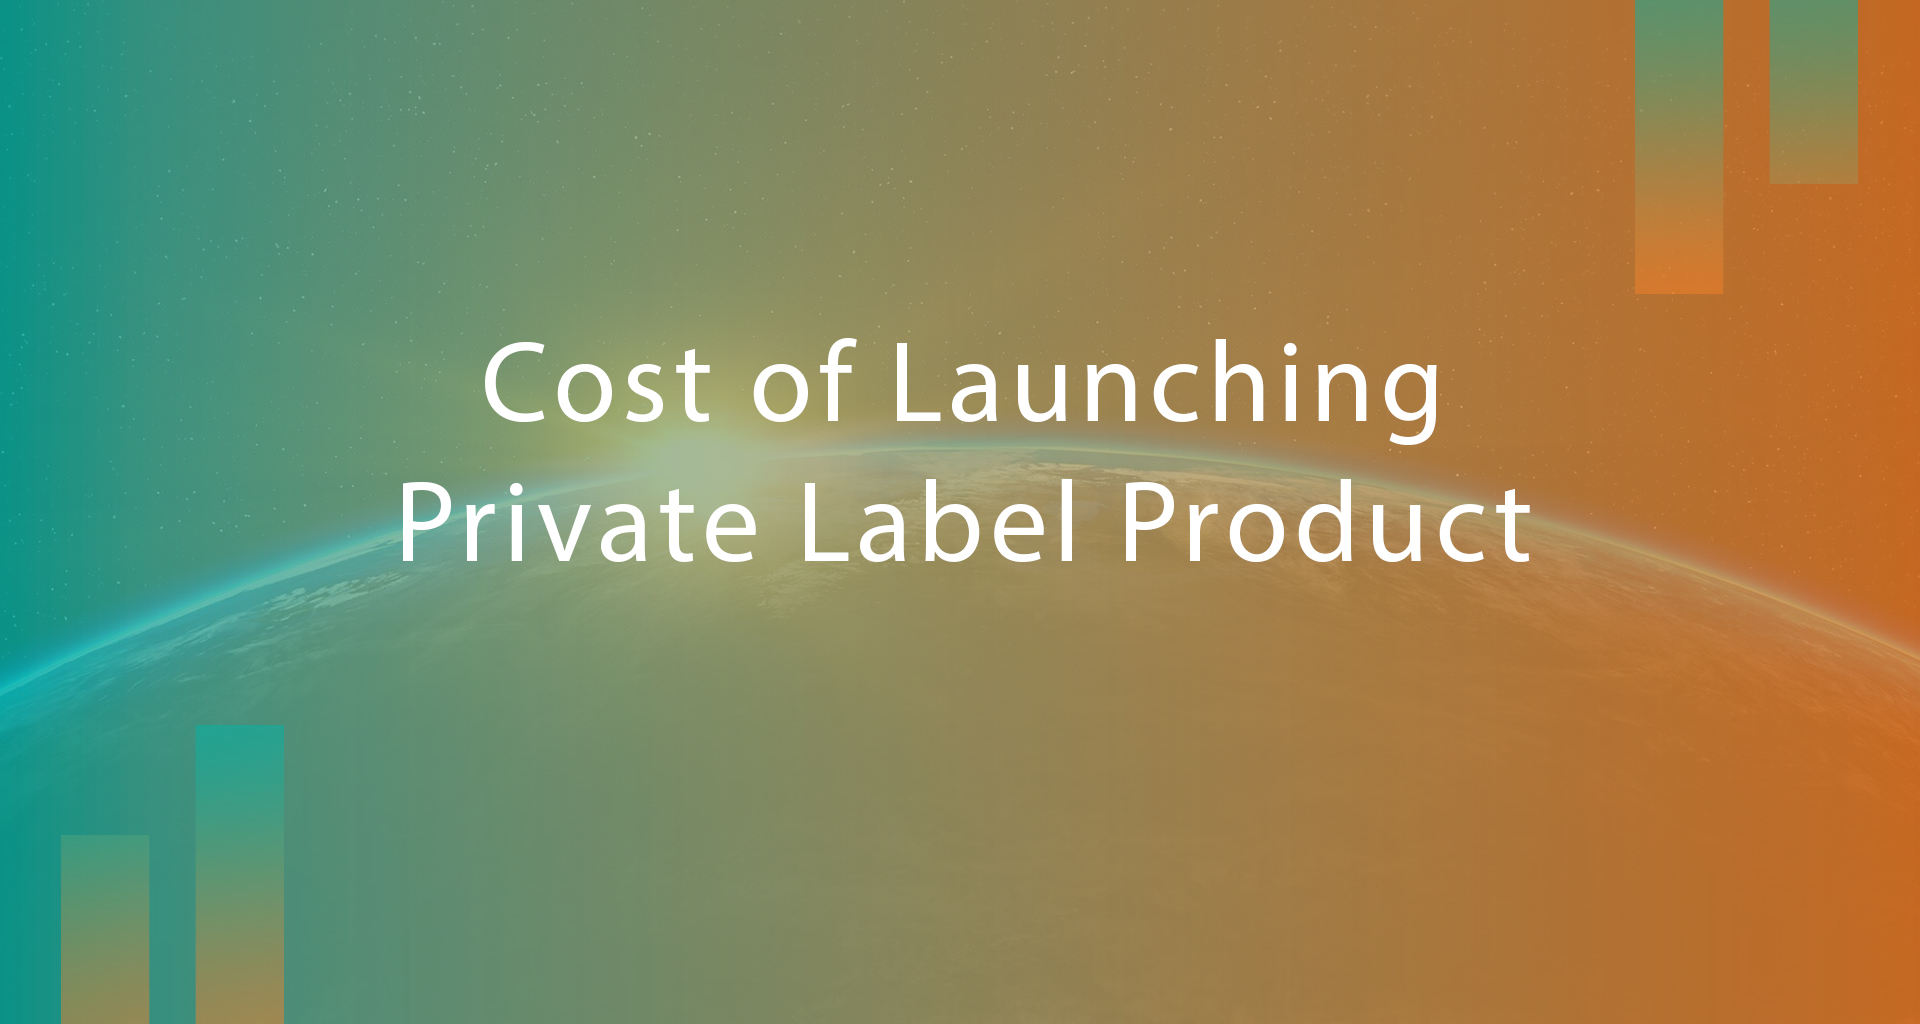 How Much Money Do I Need To Launch My Own Private Label Product on Amazon?